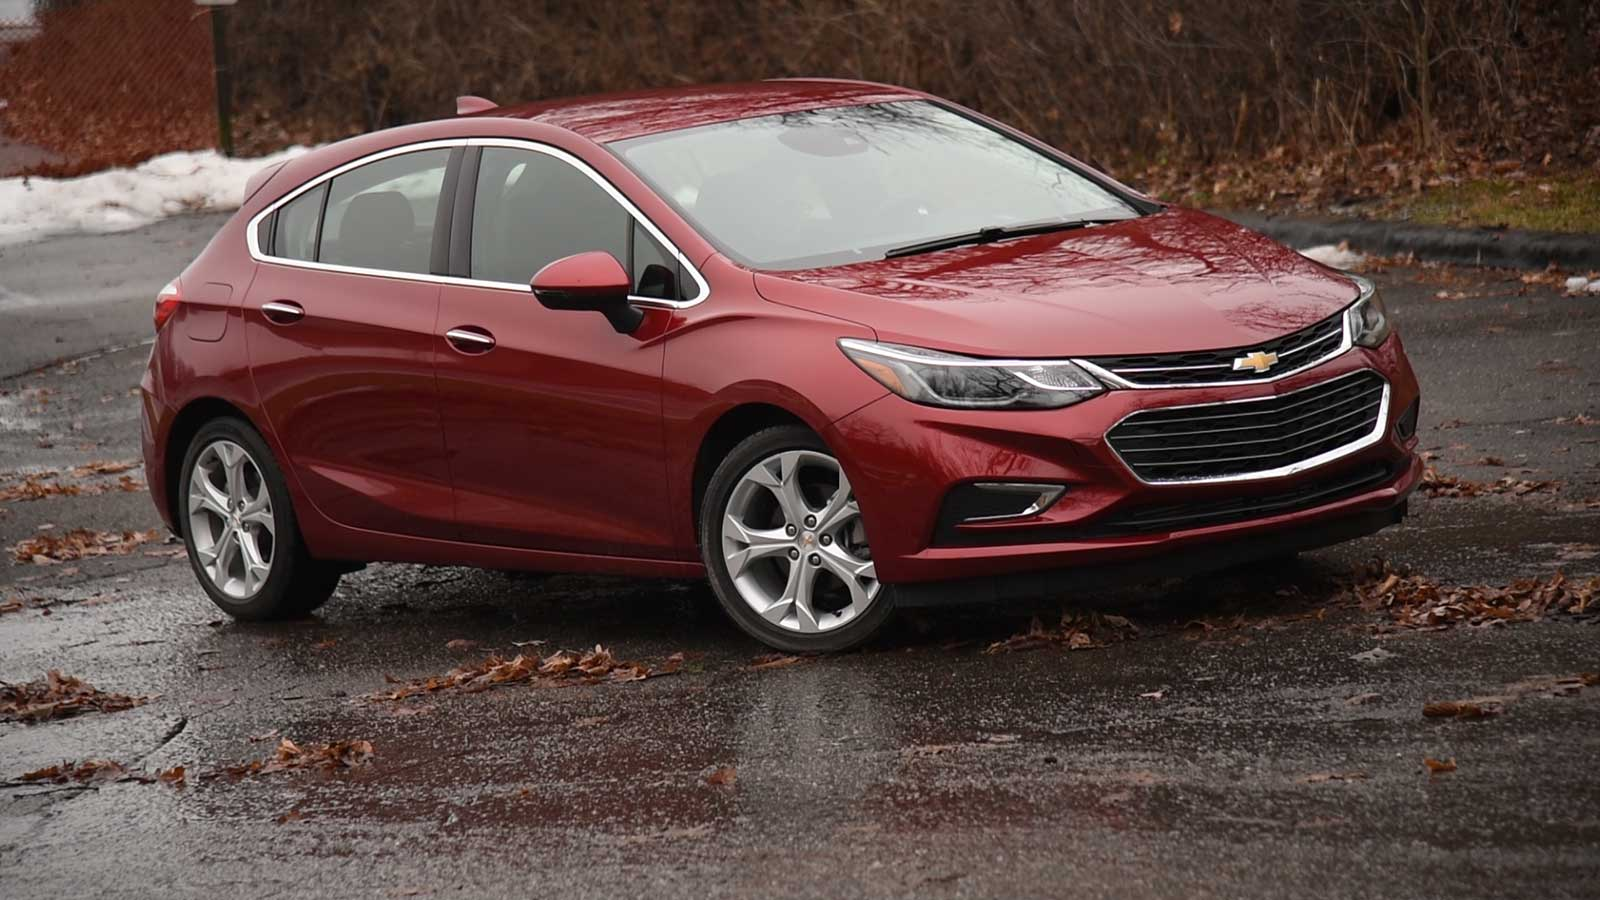 2017 Chevrolet Cruze Hatchback Premier Review: Curbed with ...